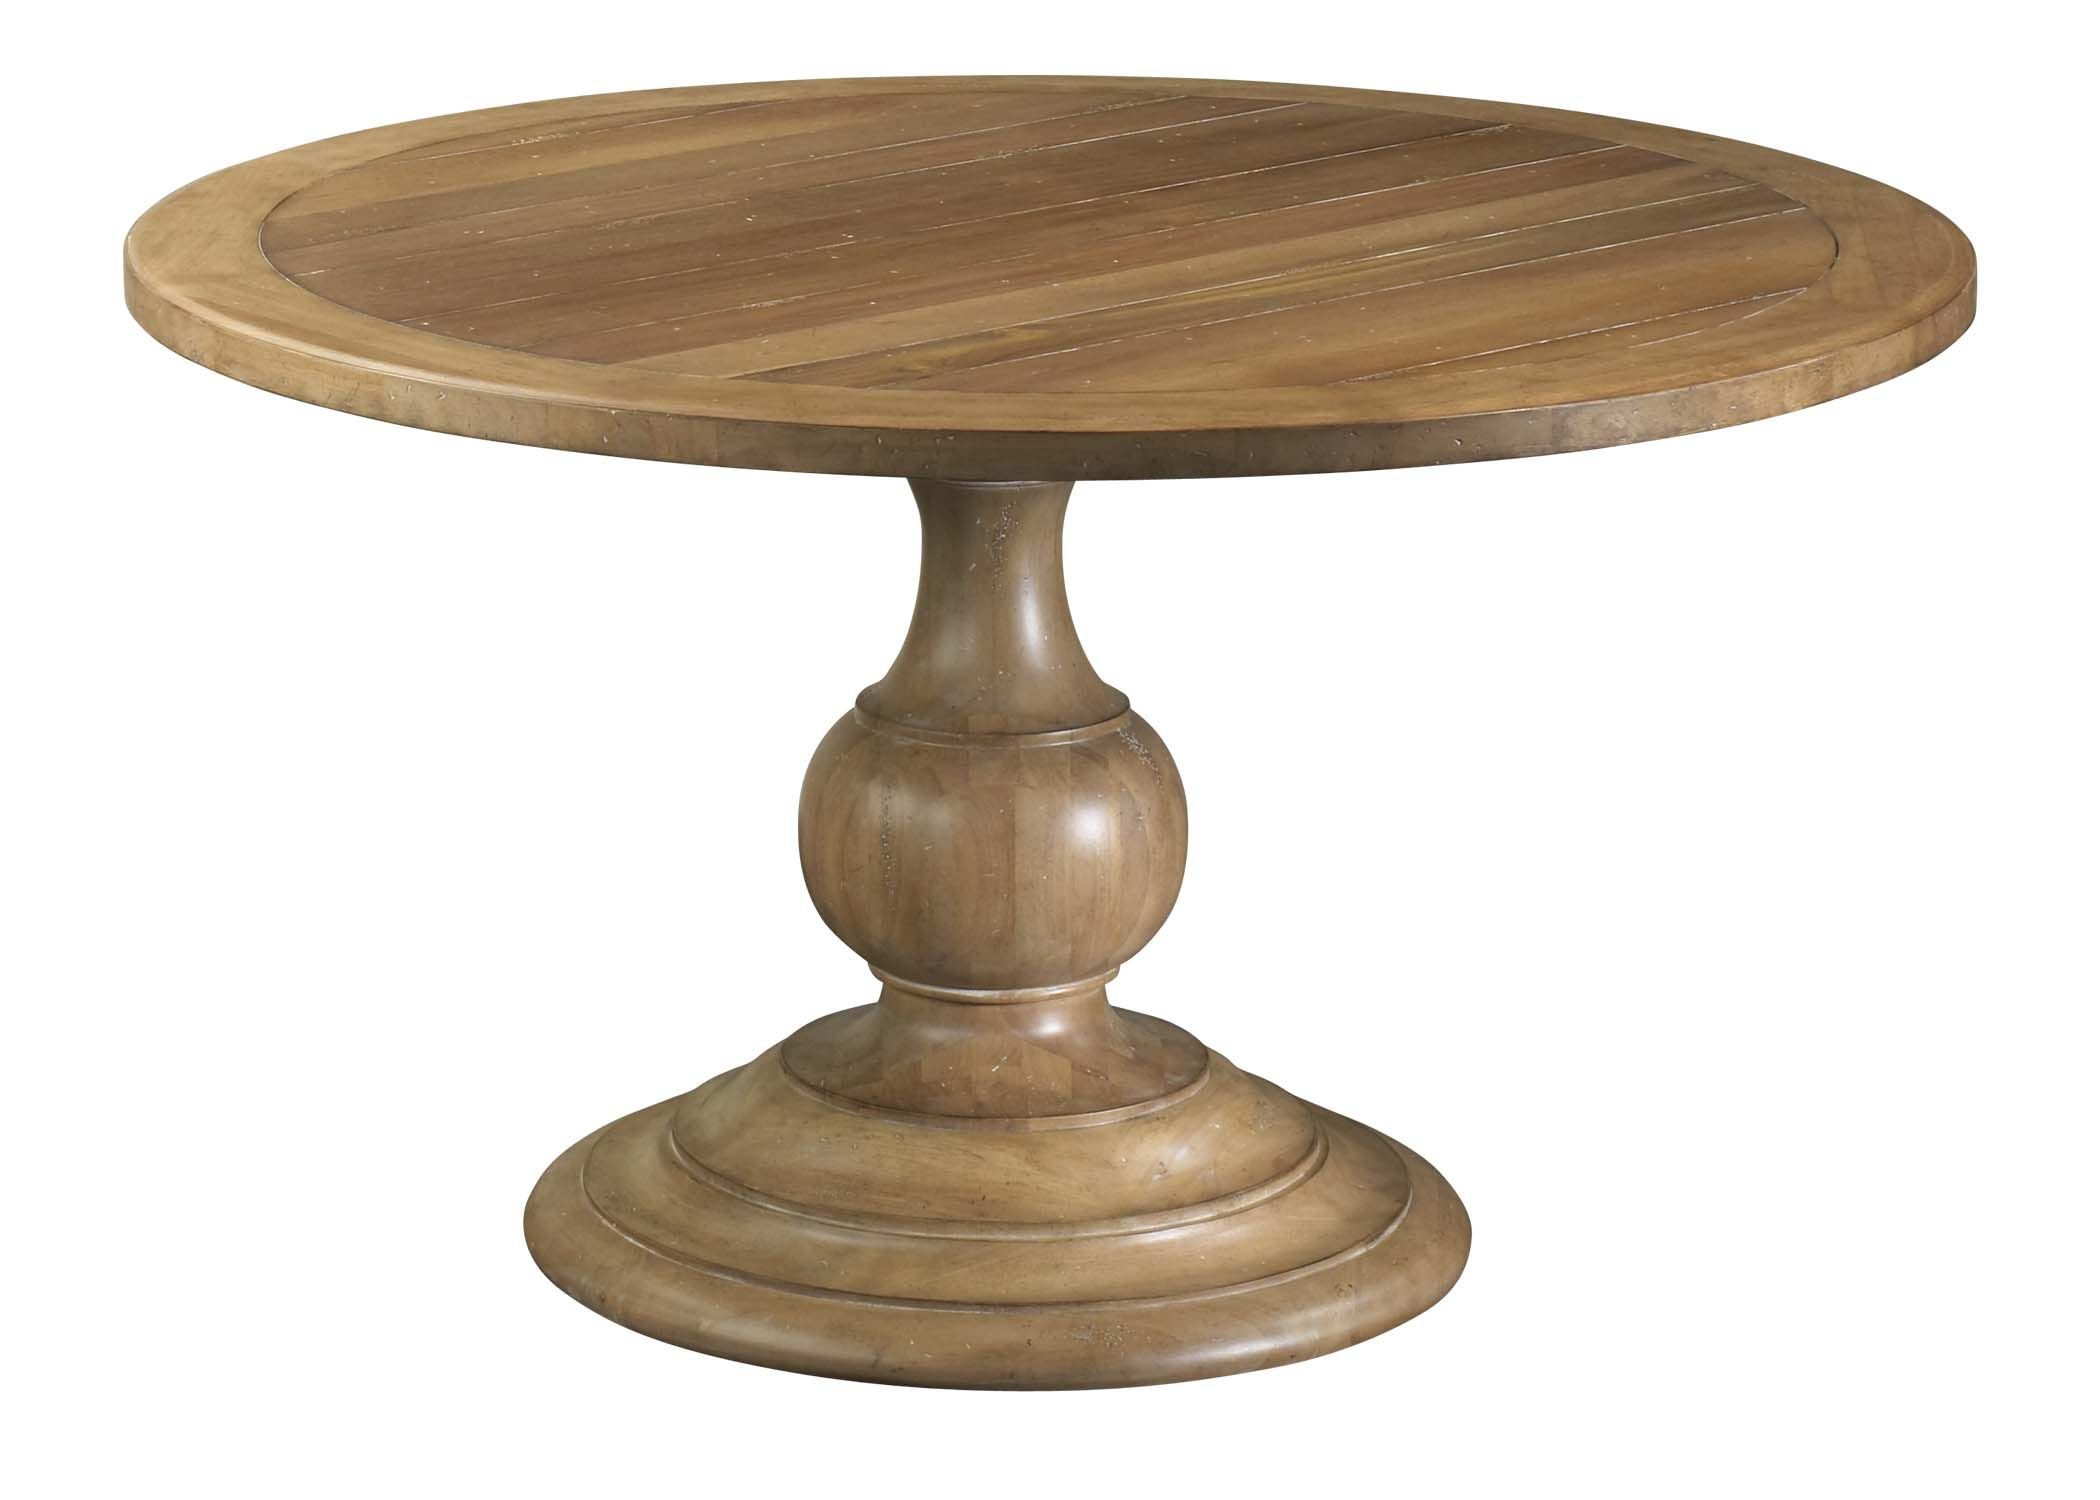 48 Inch Round Pedestal Dining Table Check More At Http Regarding 2017 Corvena 48'' Pedestal Dining Tables (View 9 of 15)